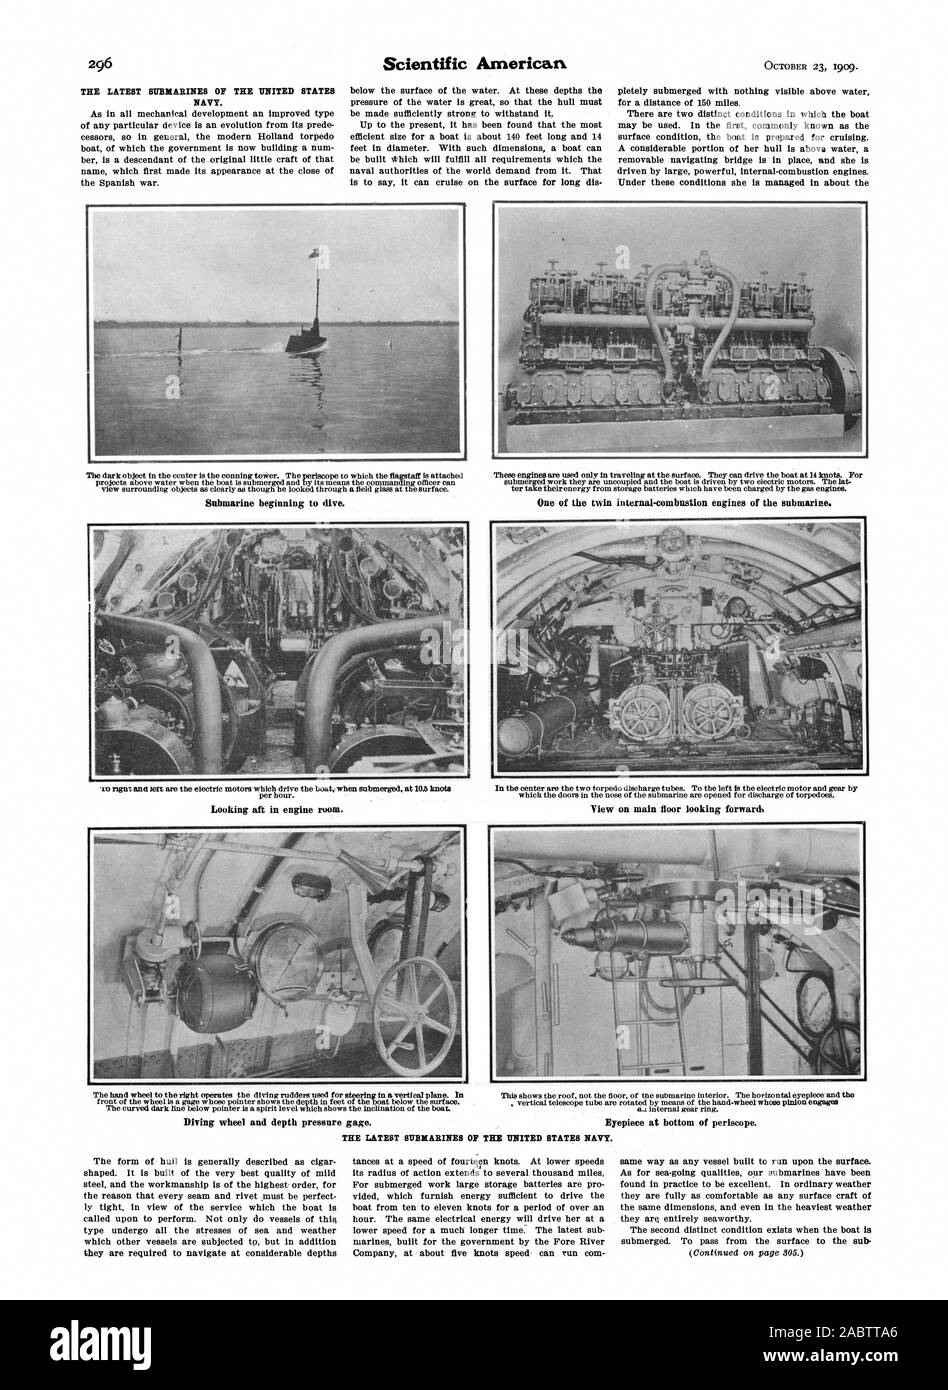 Submarine beginning to dive. One of the twin internal-combustion engines of the submarine. Looking aft in engine room. View on main floor looking forward. Diving wheel and depth pressure gage., scientific american, -1909-10-23 Stock Photo